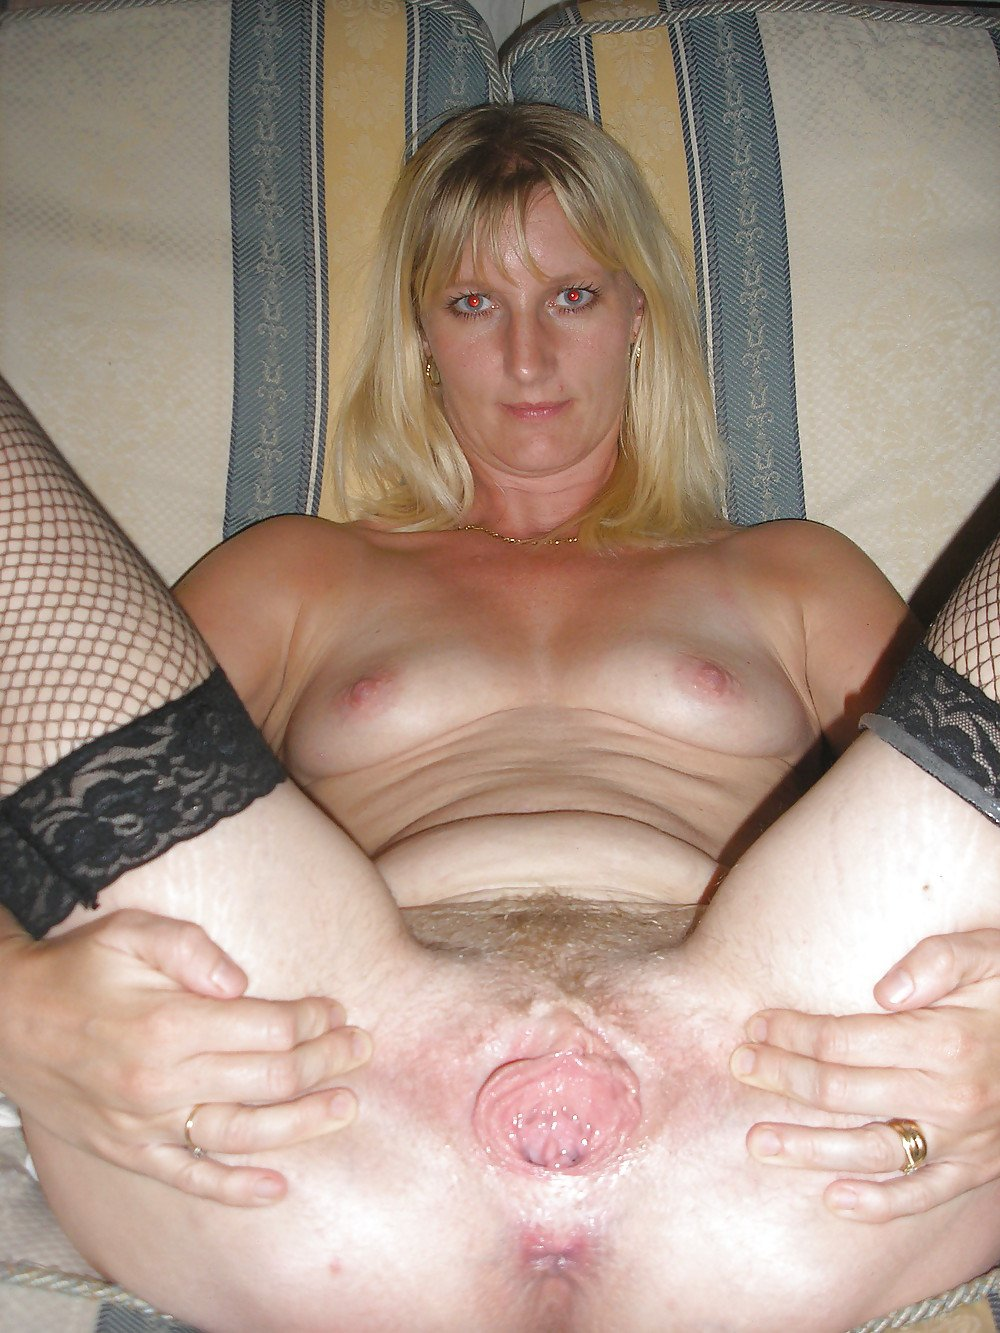 Mature open wide pussy Mature woman reveals her hairy pussy